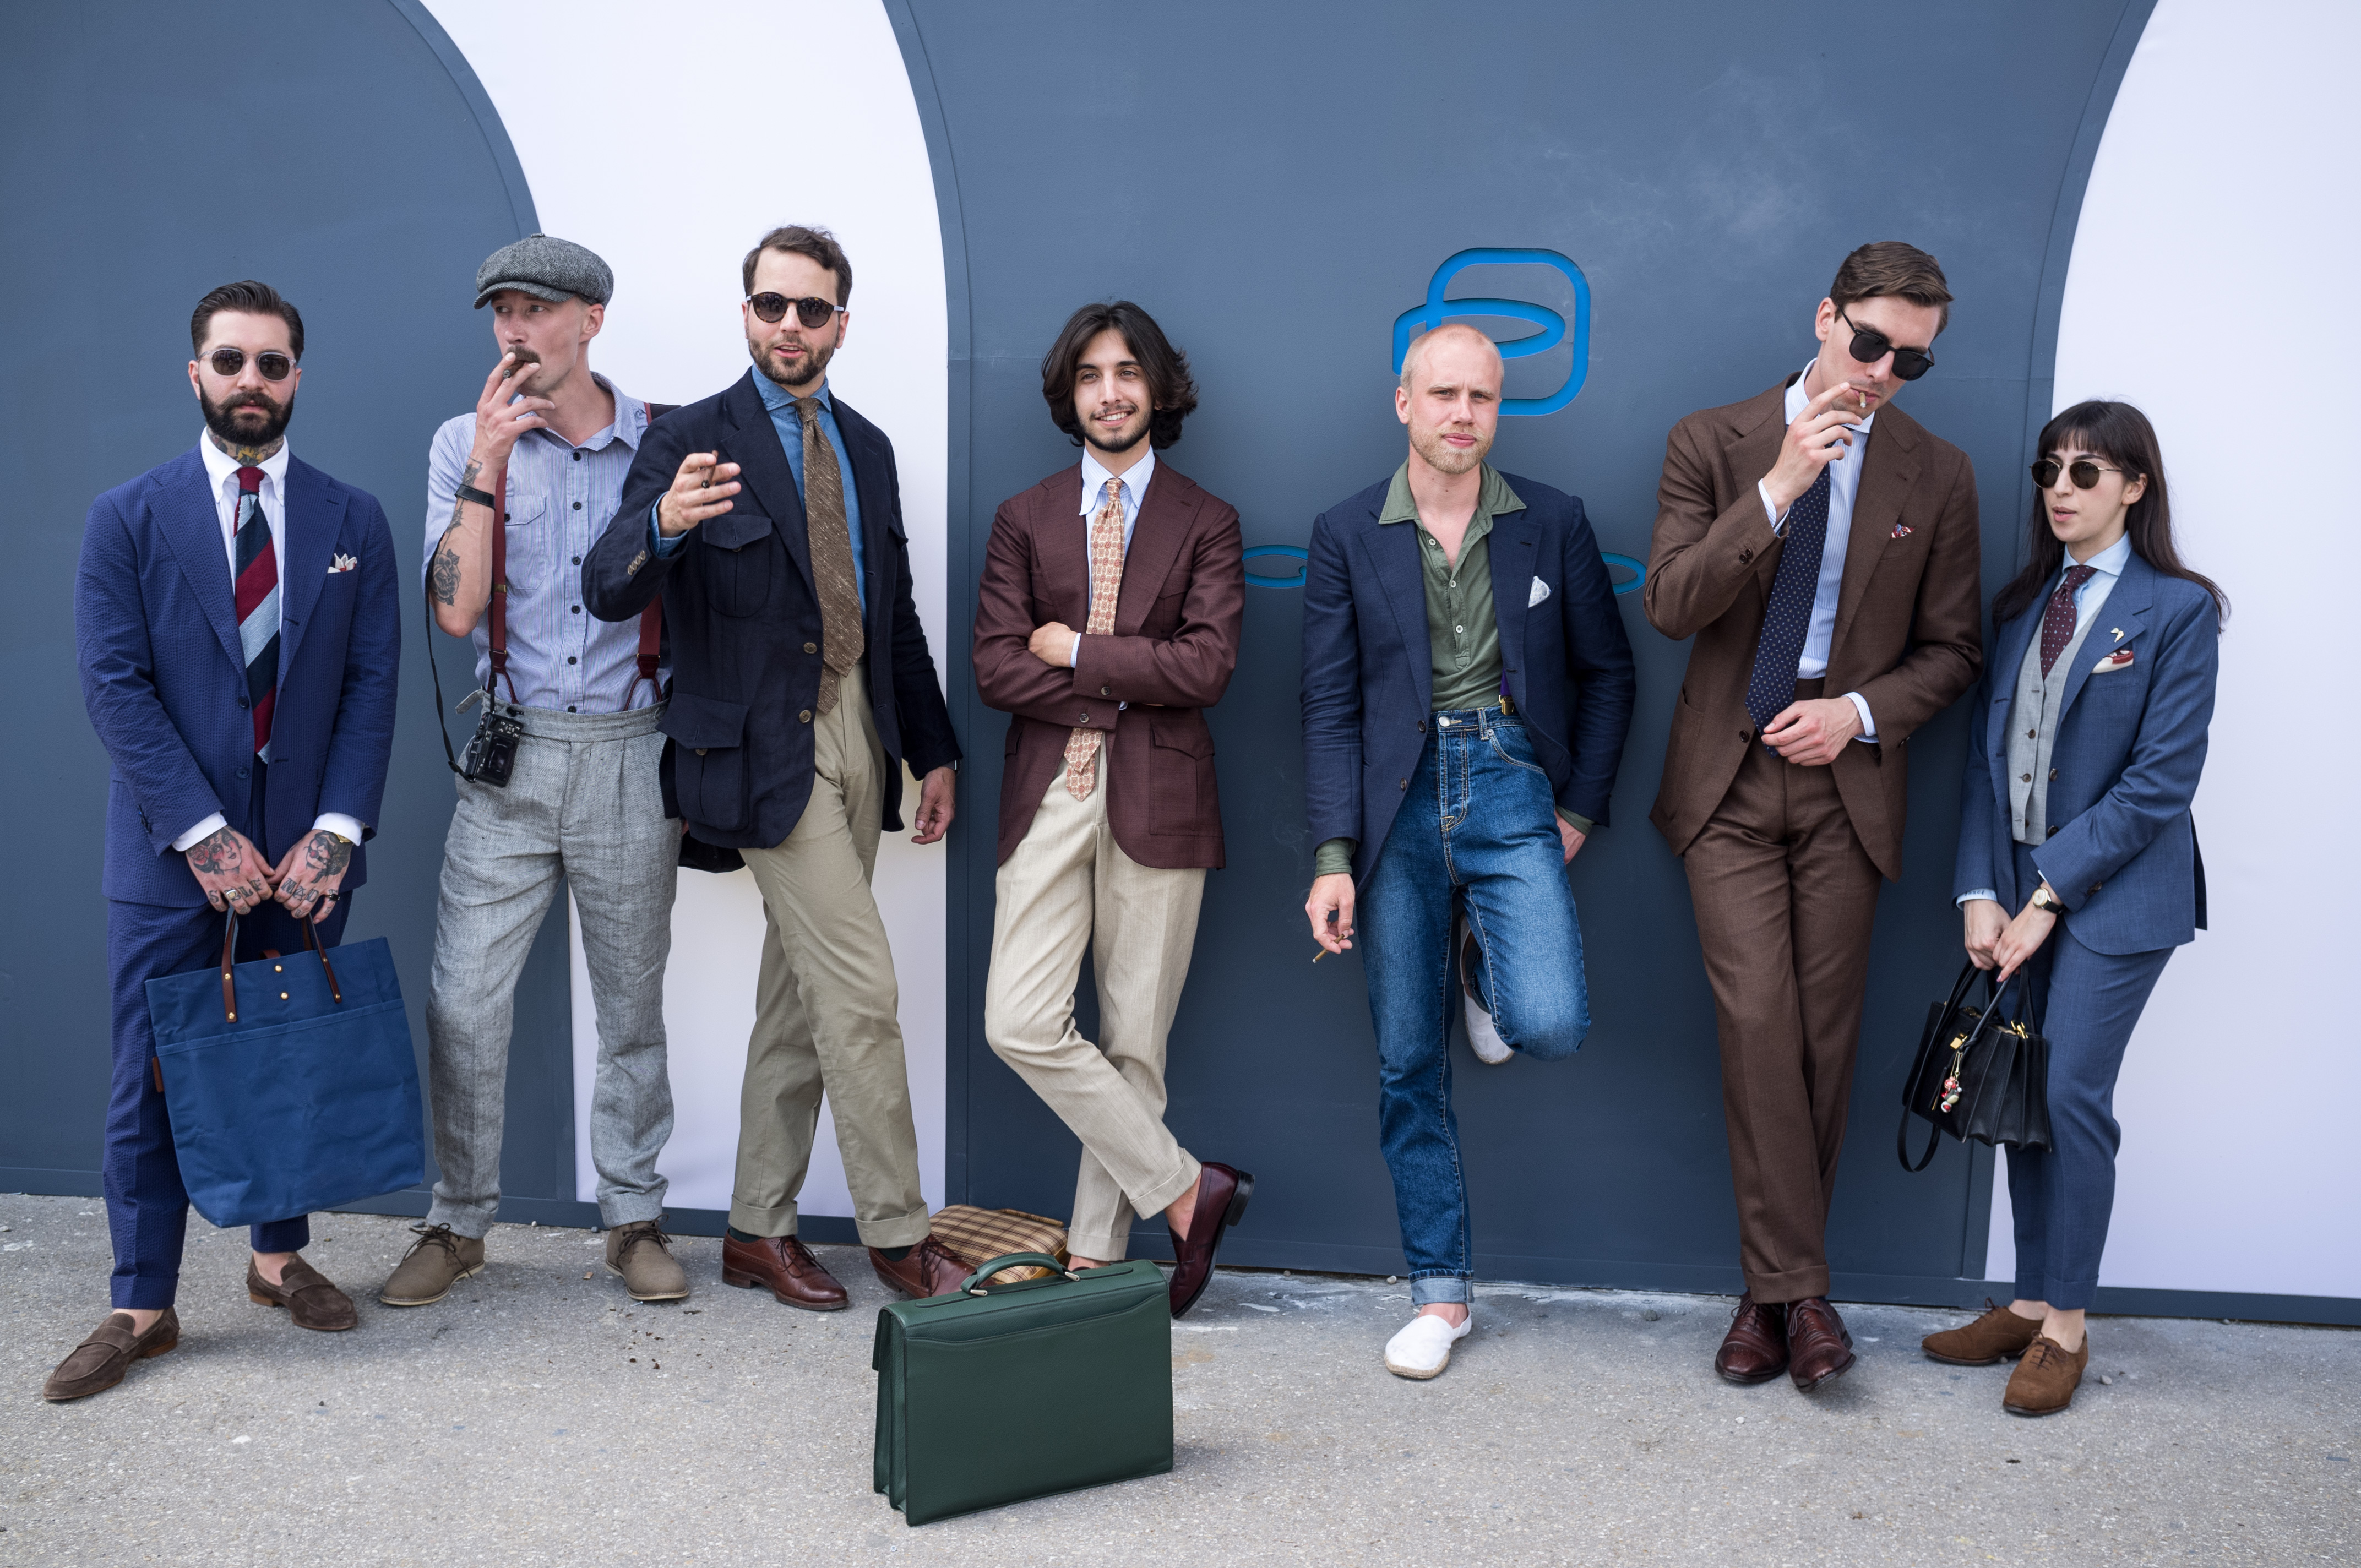 broken_oracle's photos in Pitti Uomo 90 - Day 1